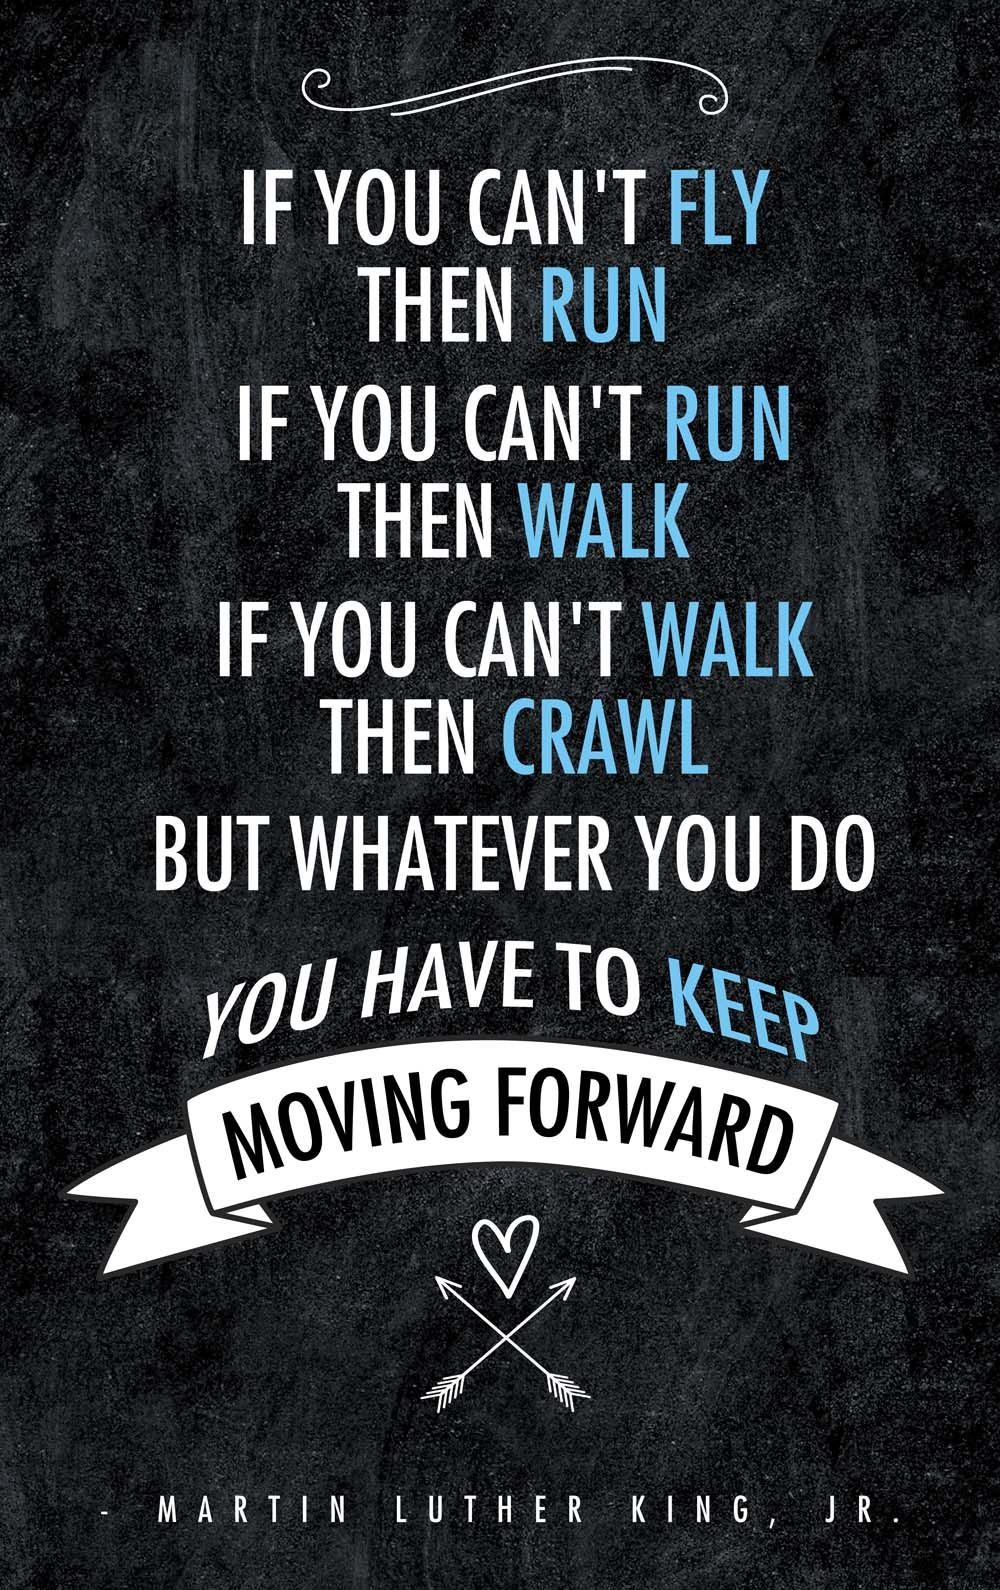 Moving Forward Quotes Gorgeous Keep Moving Forward #quote #martinlutherking  Inspiration Quotes